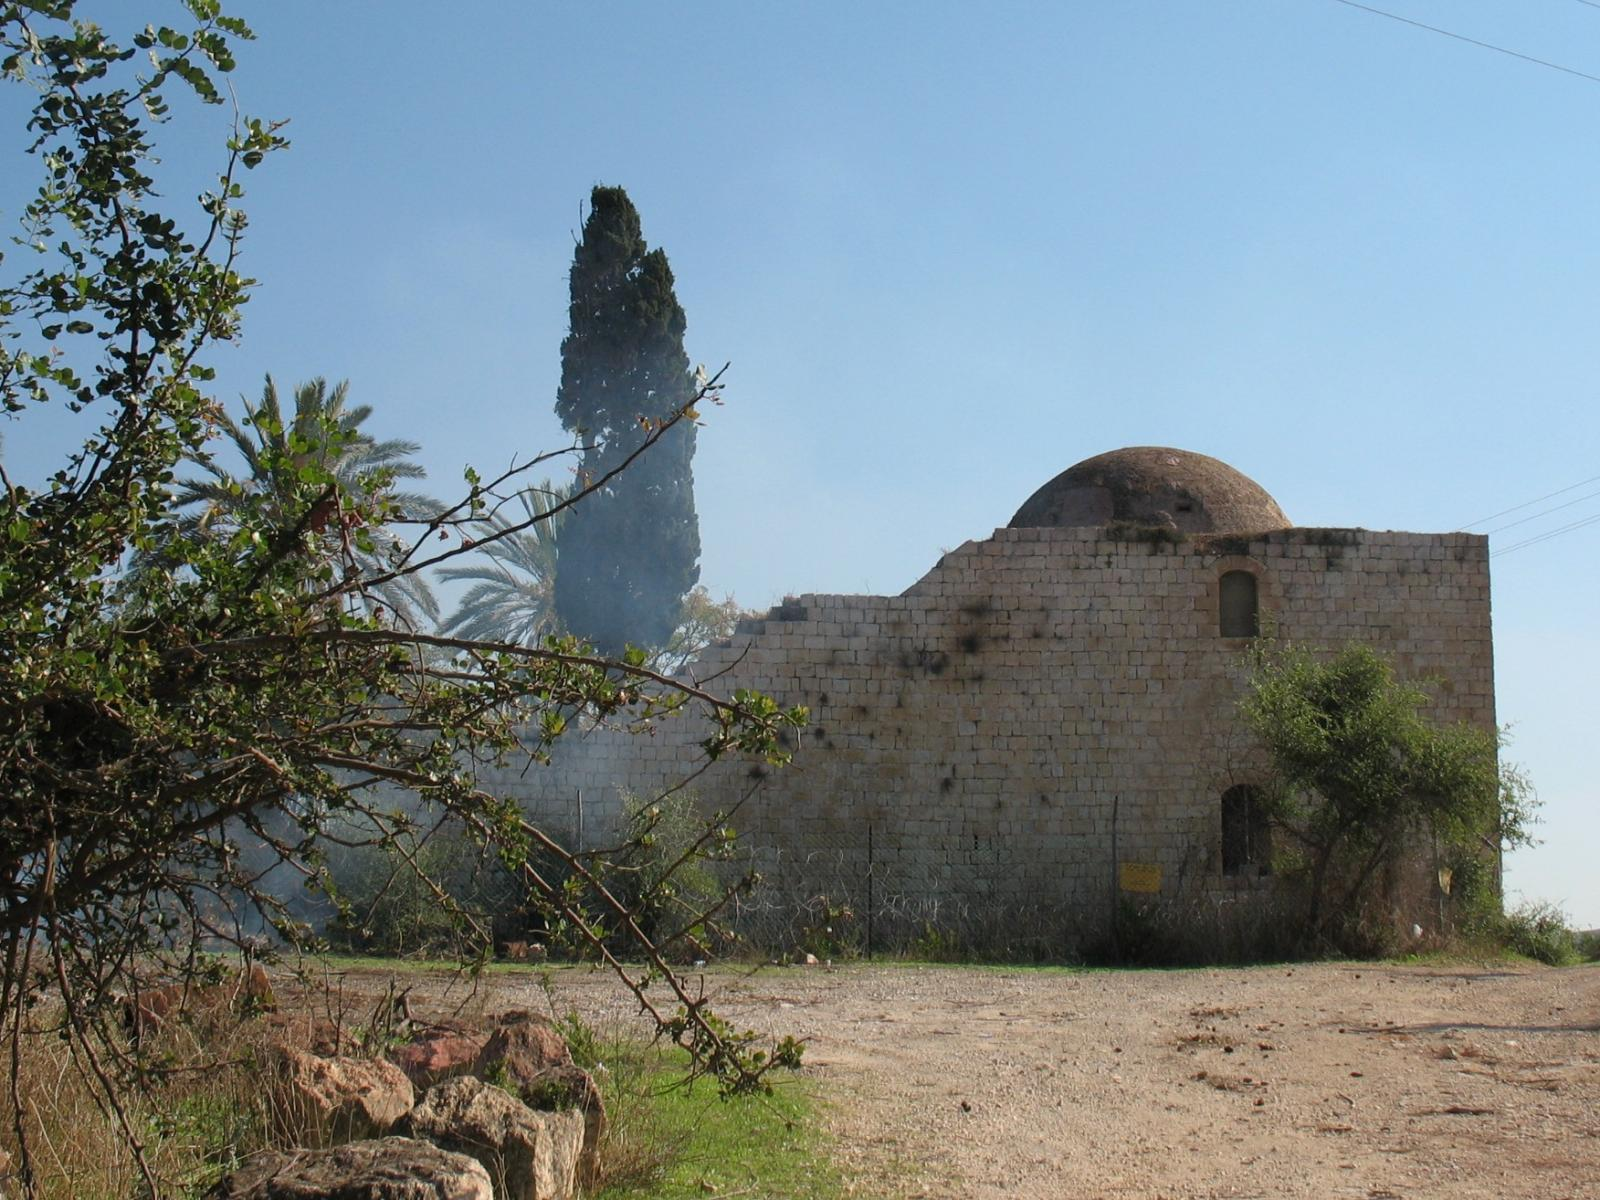 al-Ghabisiyya - الغابسية : The village's mosque. Note that it was recently fenced by the Israeli authority to keep the refugees from praying inside the ruined mosque.